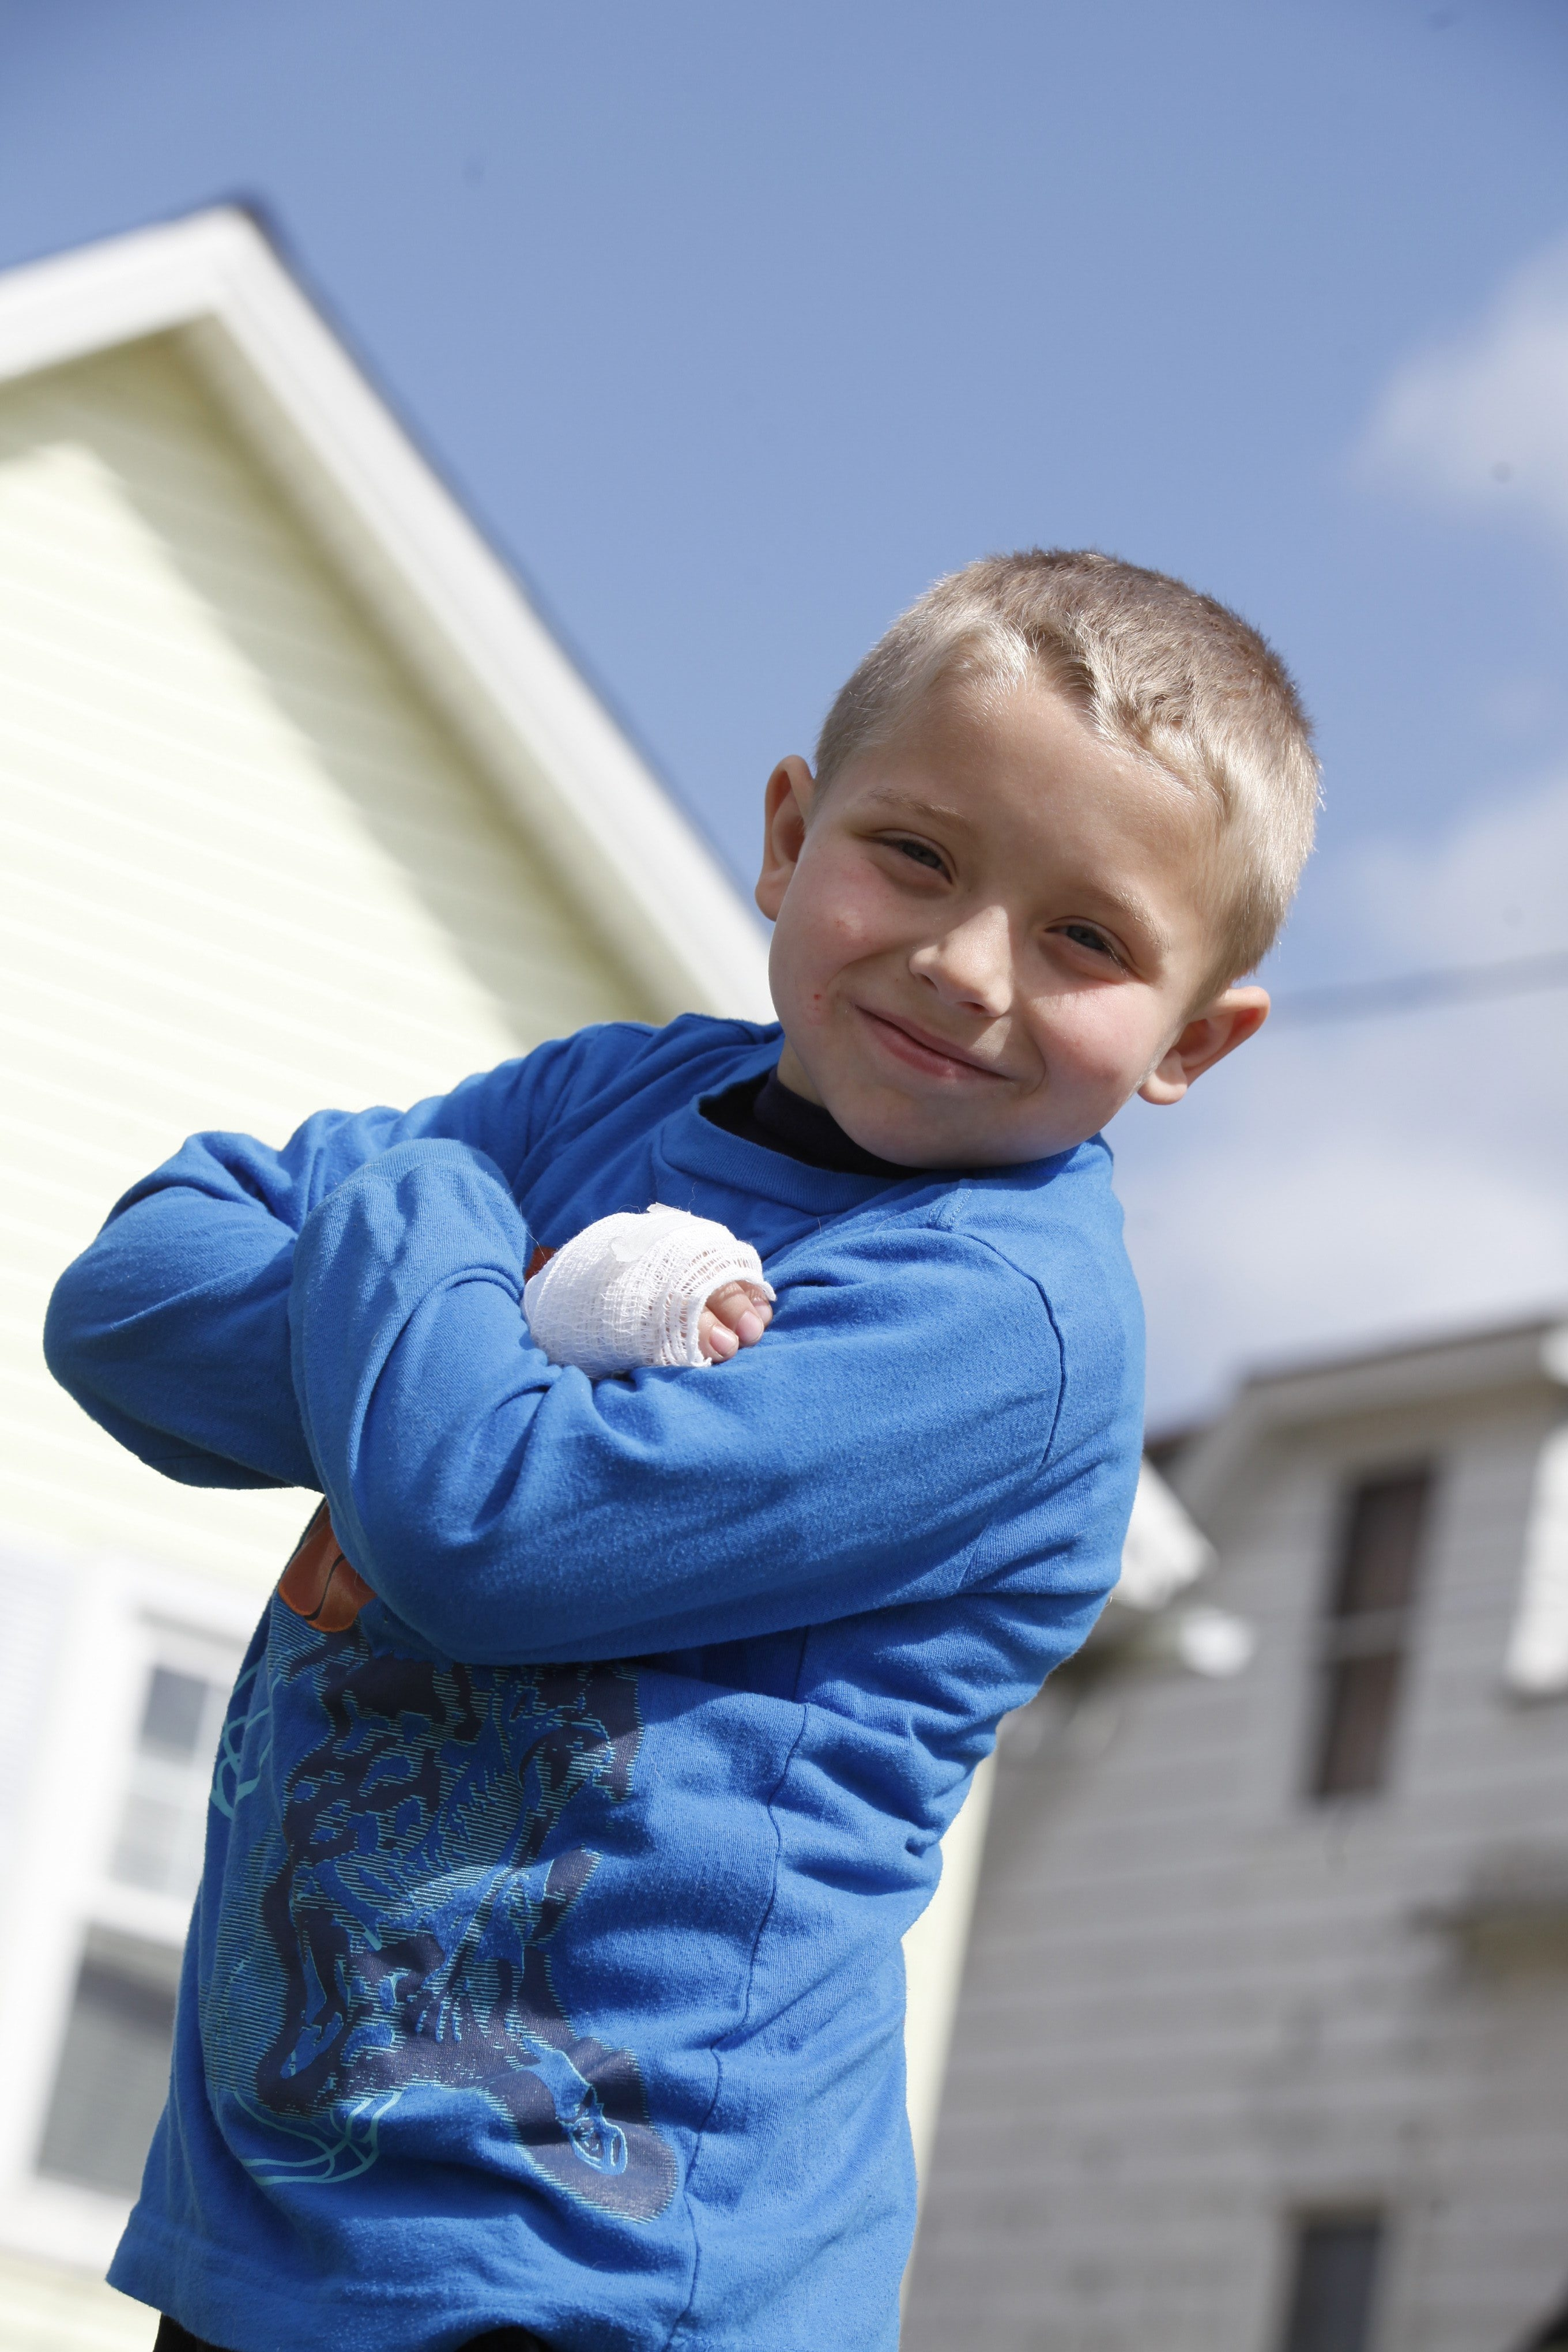 Tristan Hume, 7, has a rare genetic disorder that causes cholesterol to build up in his liver.